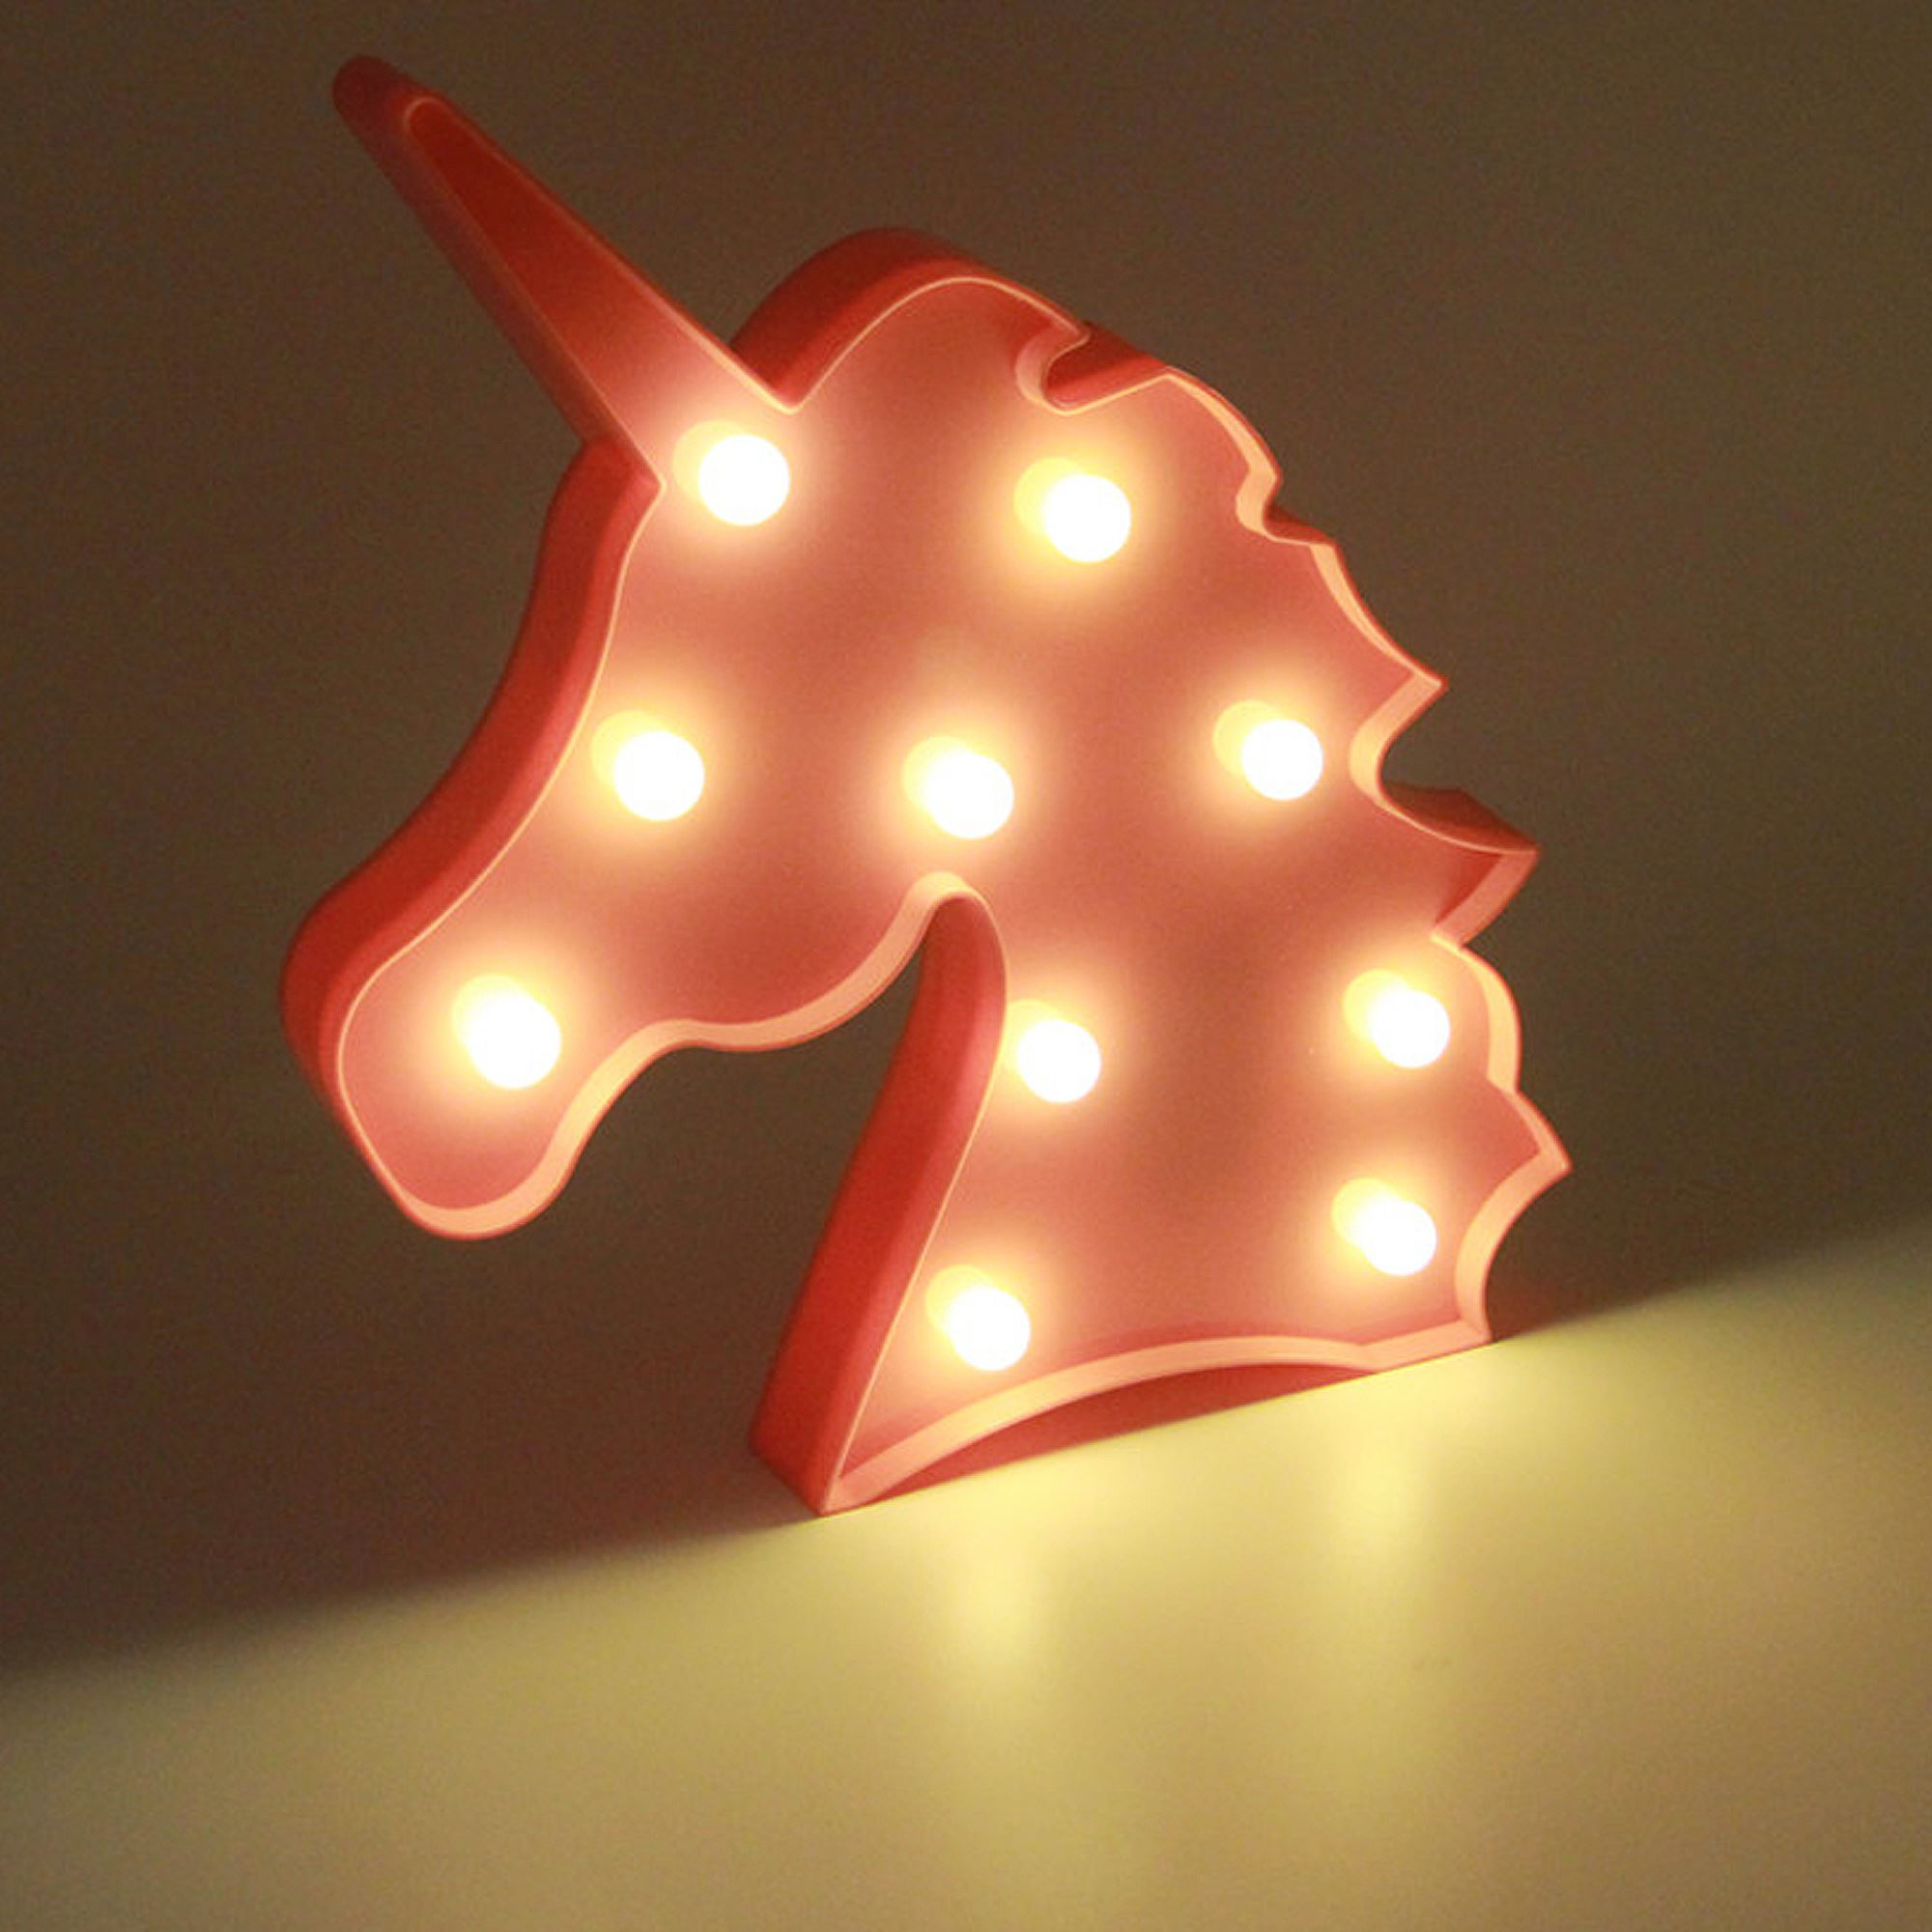 Kids Nightlight Led Night Light Up Christmas Kids Bedroom Home Decoration